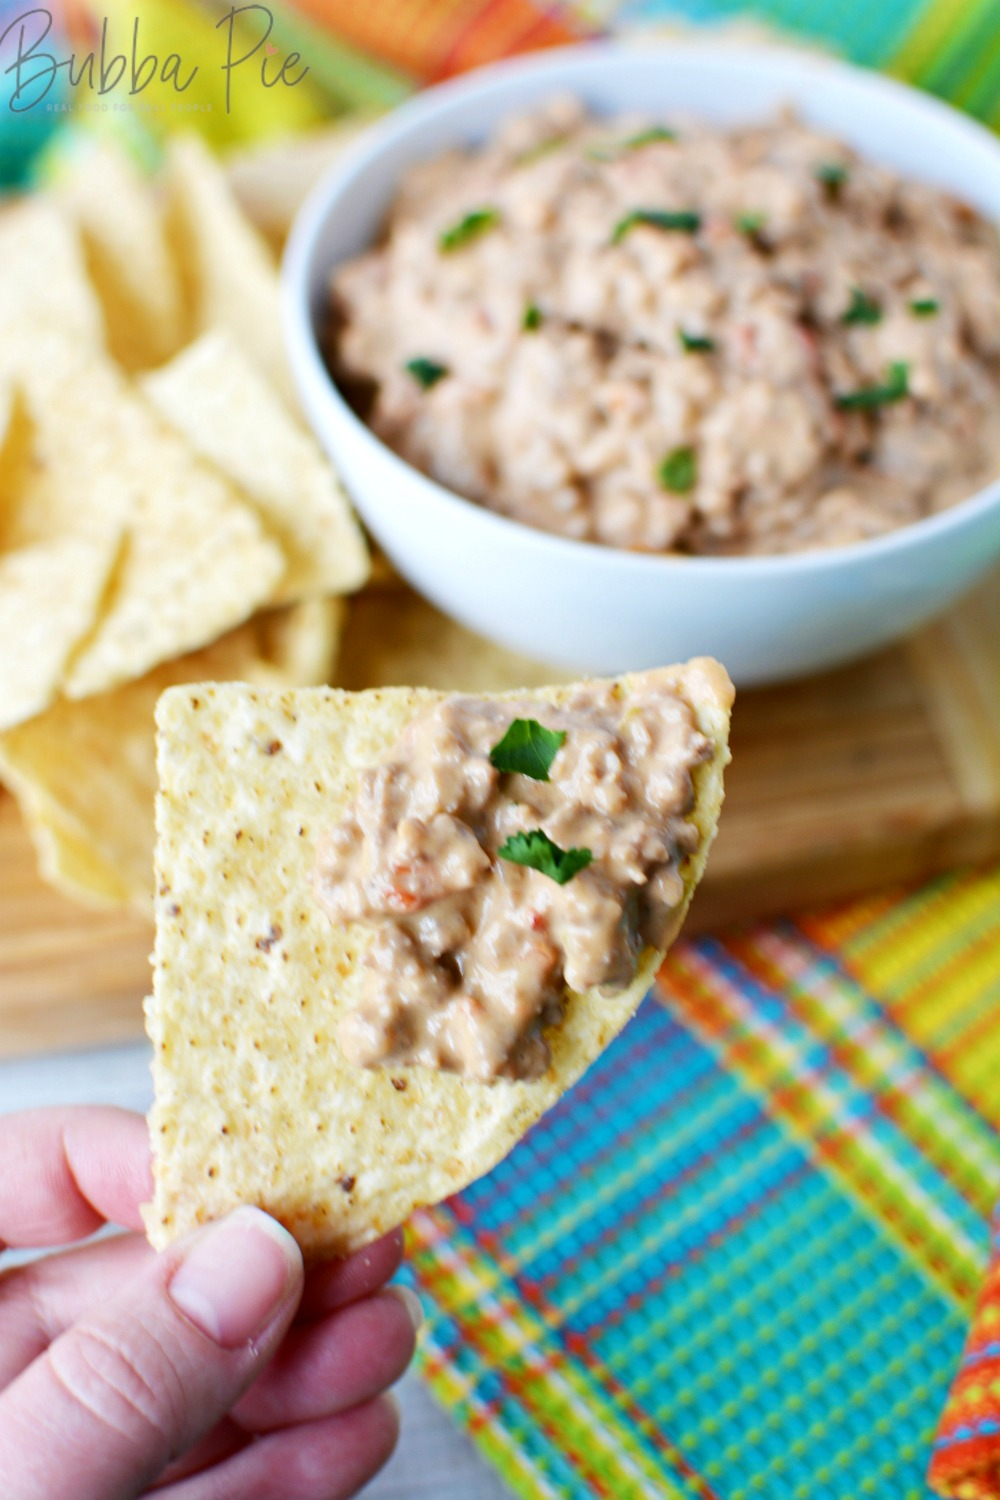 Rotel Dip is a great cheese dip to have with tortilla chips, corn chips, bread, pretzels or vegetables!